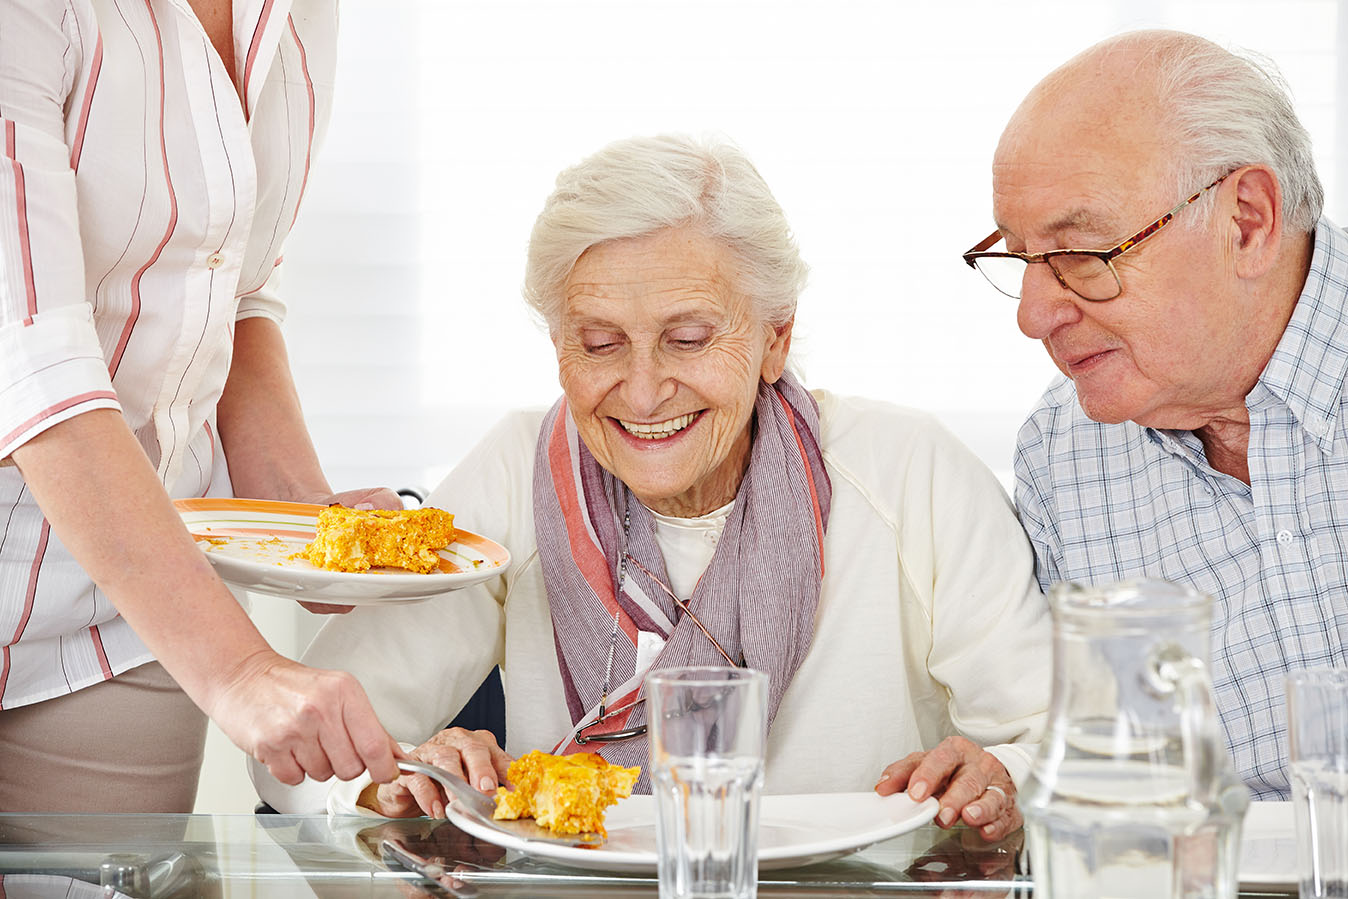 [FREE GUIDE] MORE THAN A MEAL: THE IMPORTANCE OF PROVIDING HIGH QUALITY FOODSERVICE IN AGED CARE